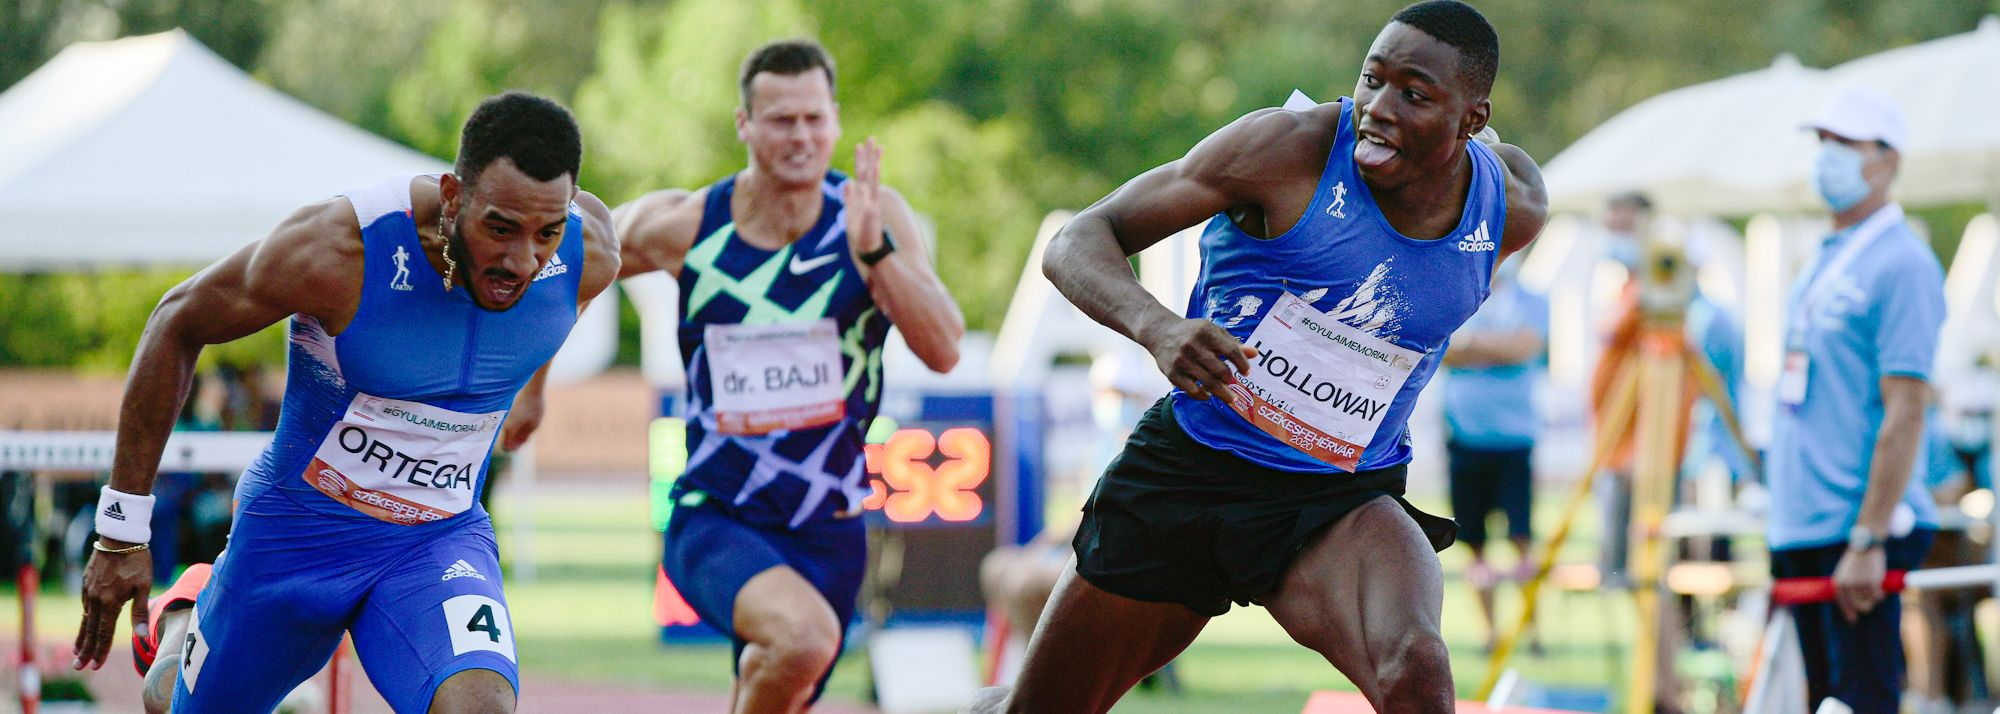 Many events at the Istvan Gyulai Memorial in Szekesfehervar – a World Athletics Continental Tour Gold meeting – on Monday and Tuesday (5-6) will offer a sneak preview of what may happen at the Olympic Games in a few weeks' time.